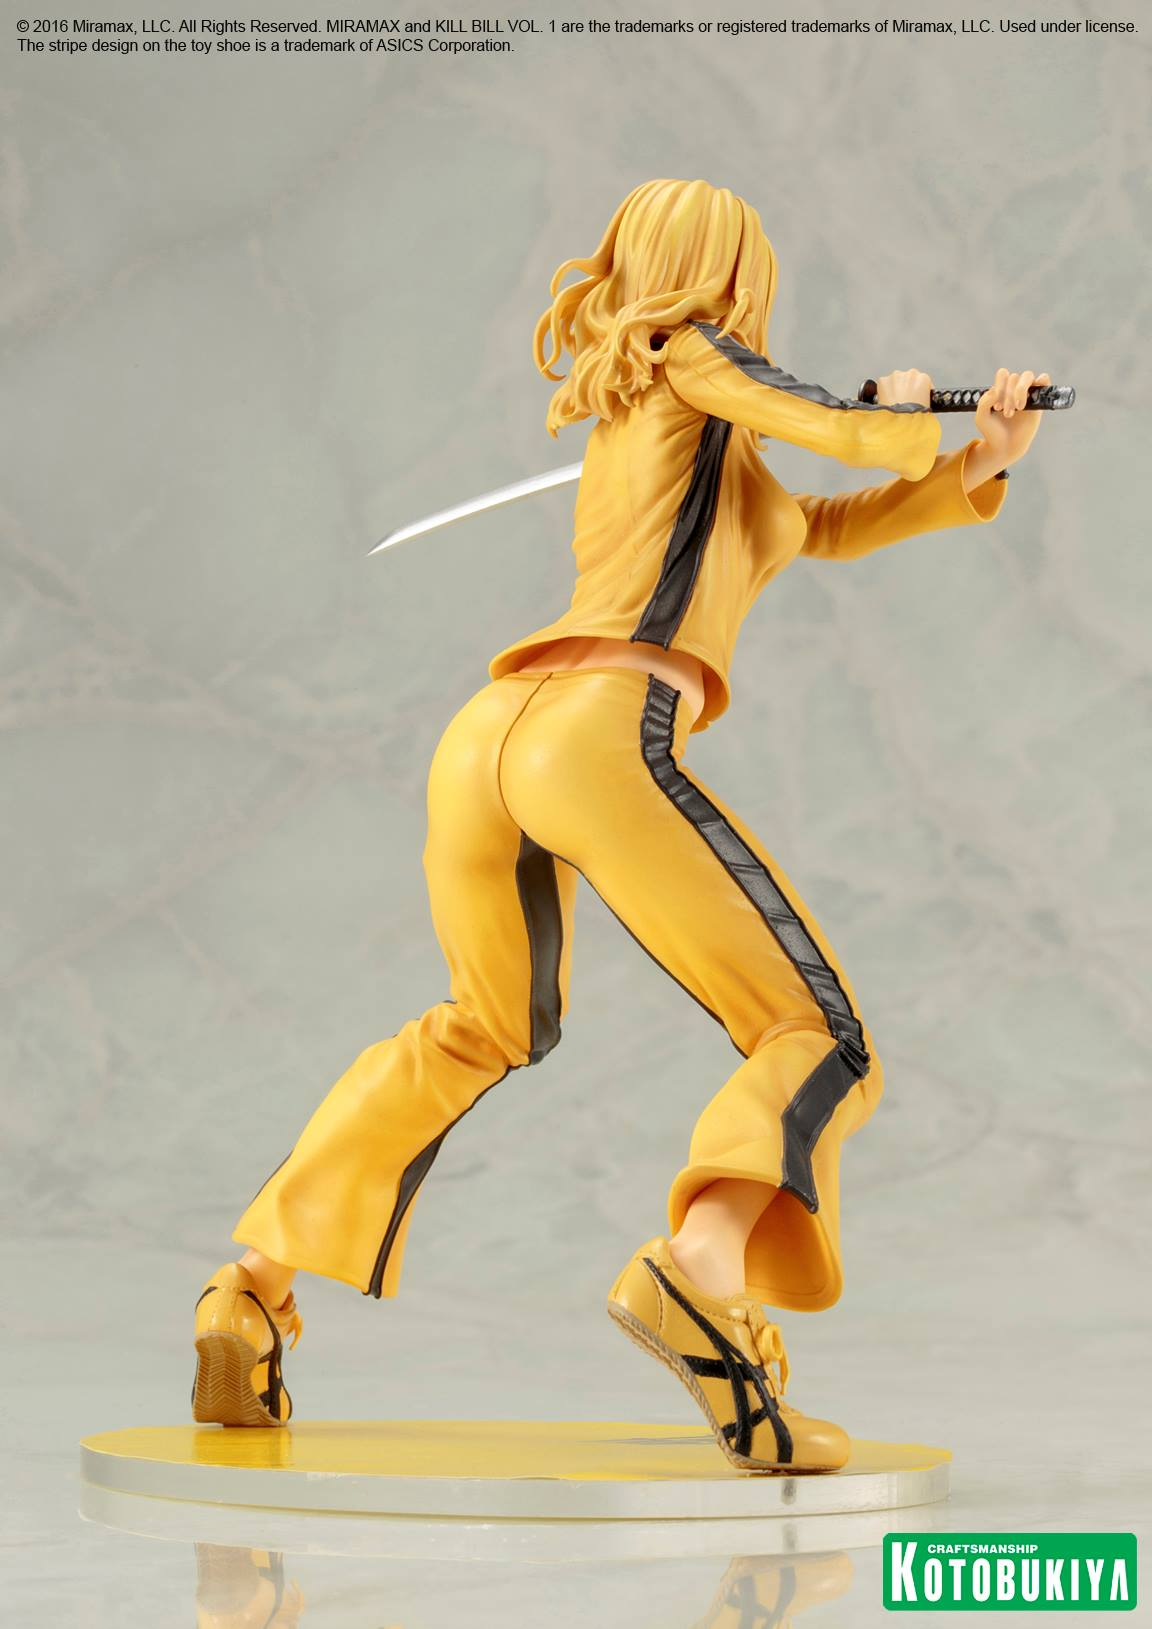 kill-bill-the-bride-bishouoj-statue-kotobukiya-3